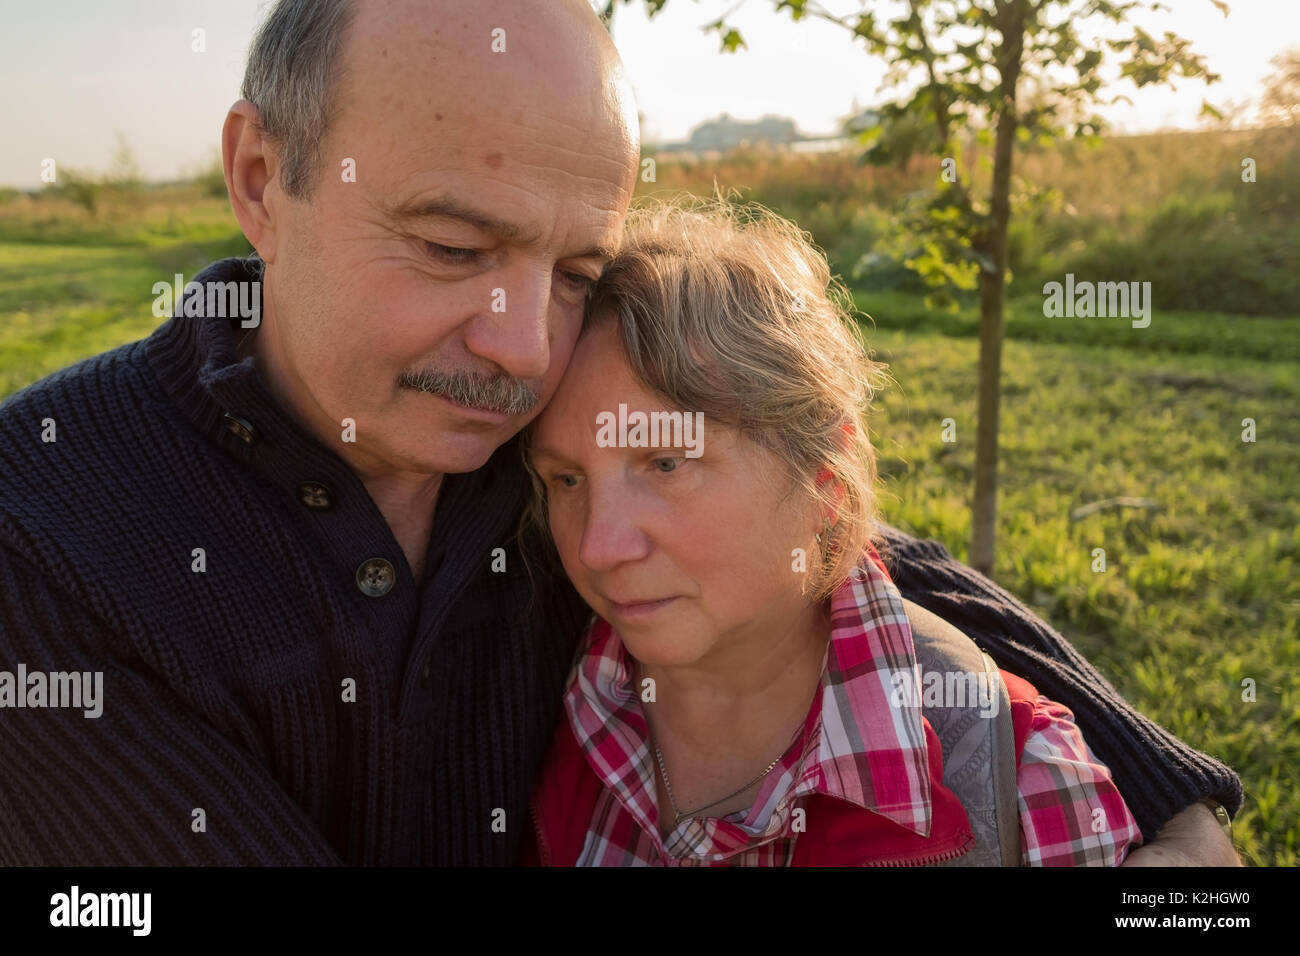 Sad elderly couple. Coping with problems together. - Stock Image